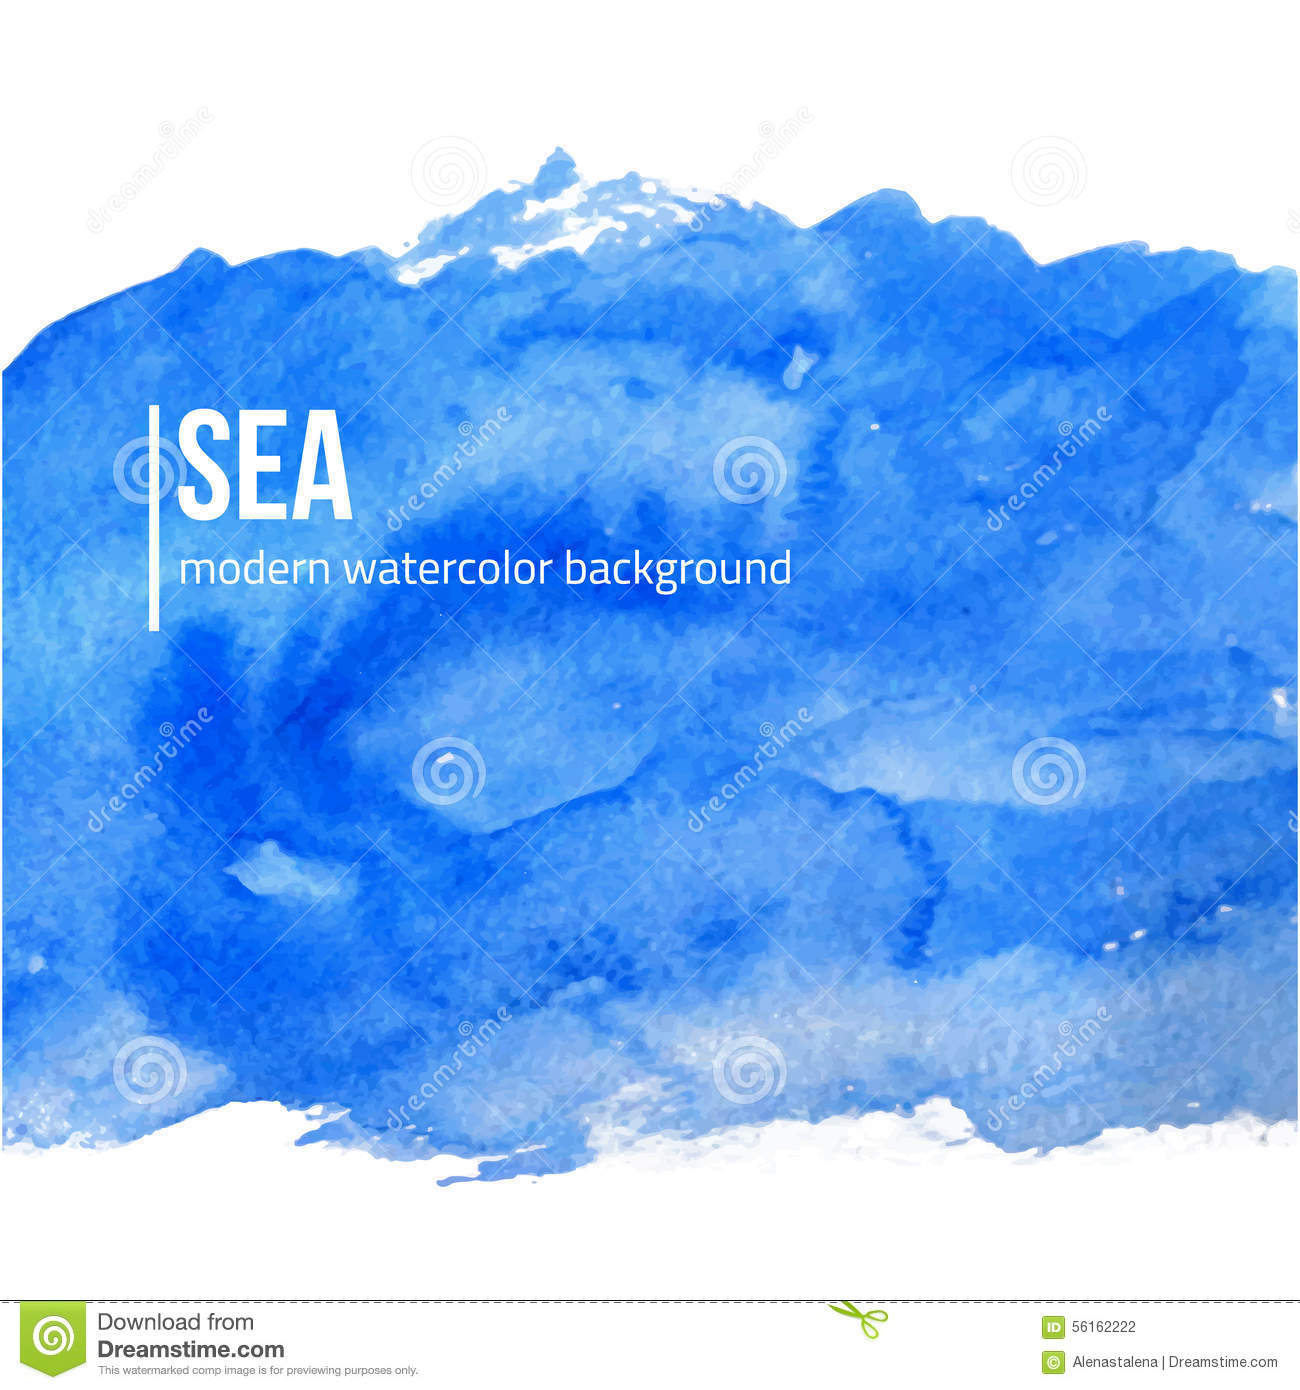 Book Cover Design Watercolor ~ Vector blue watercolor background sea or sky creative